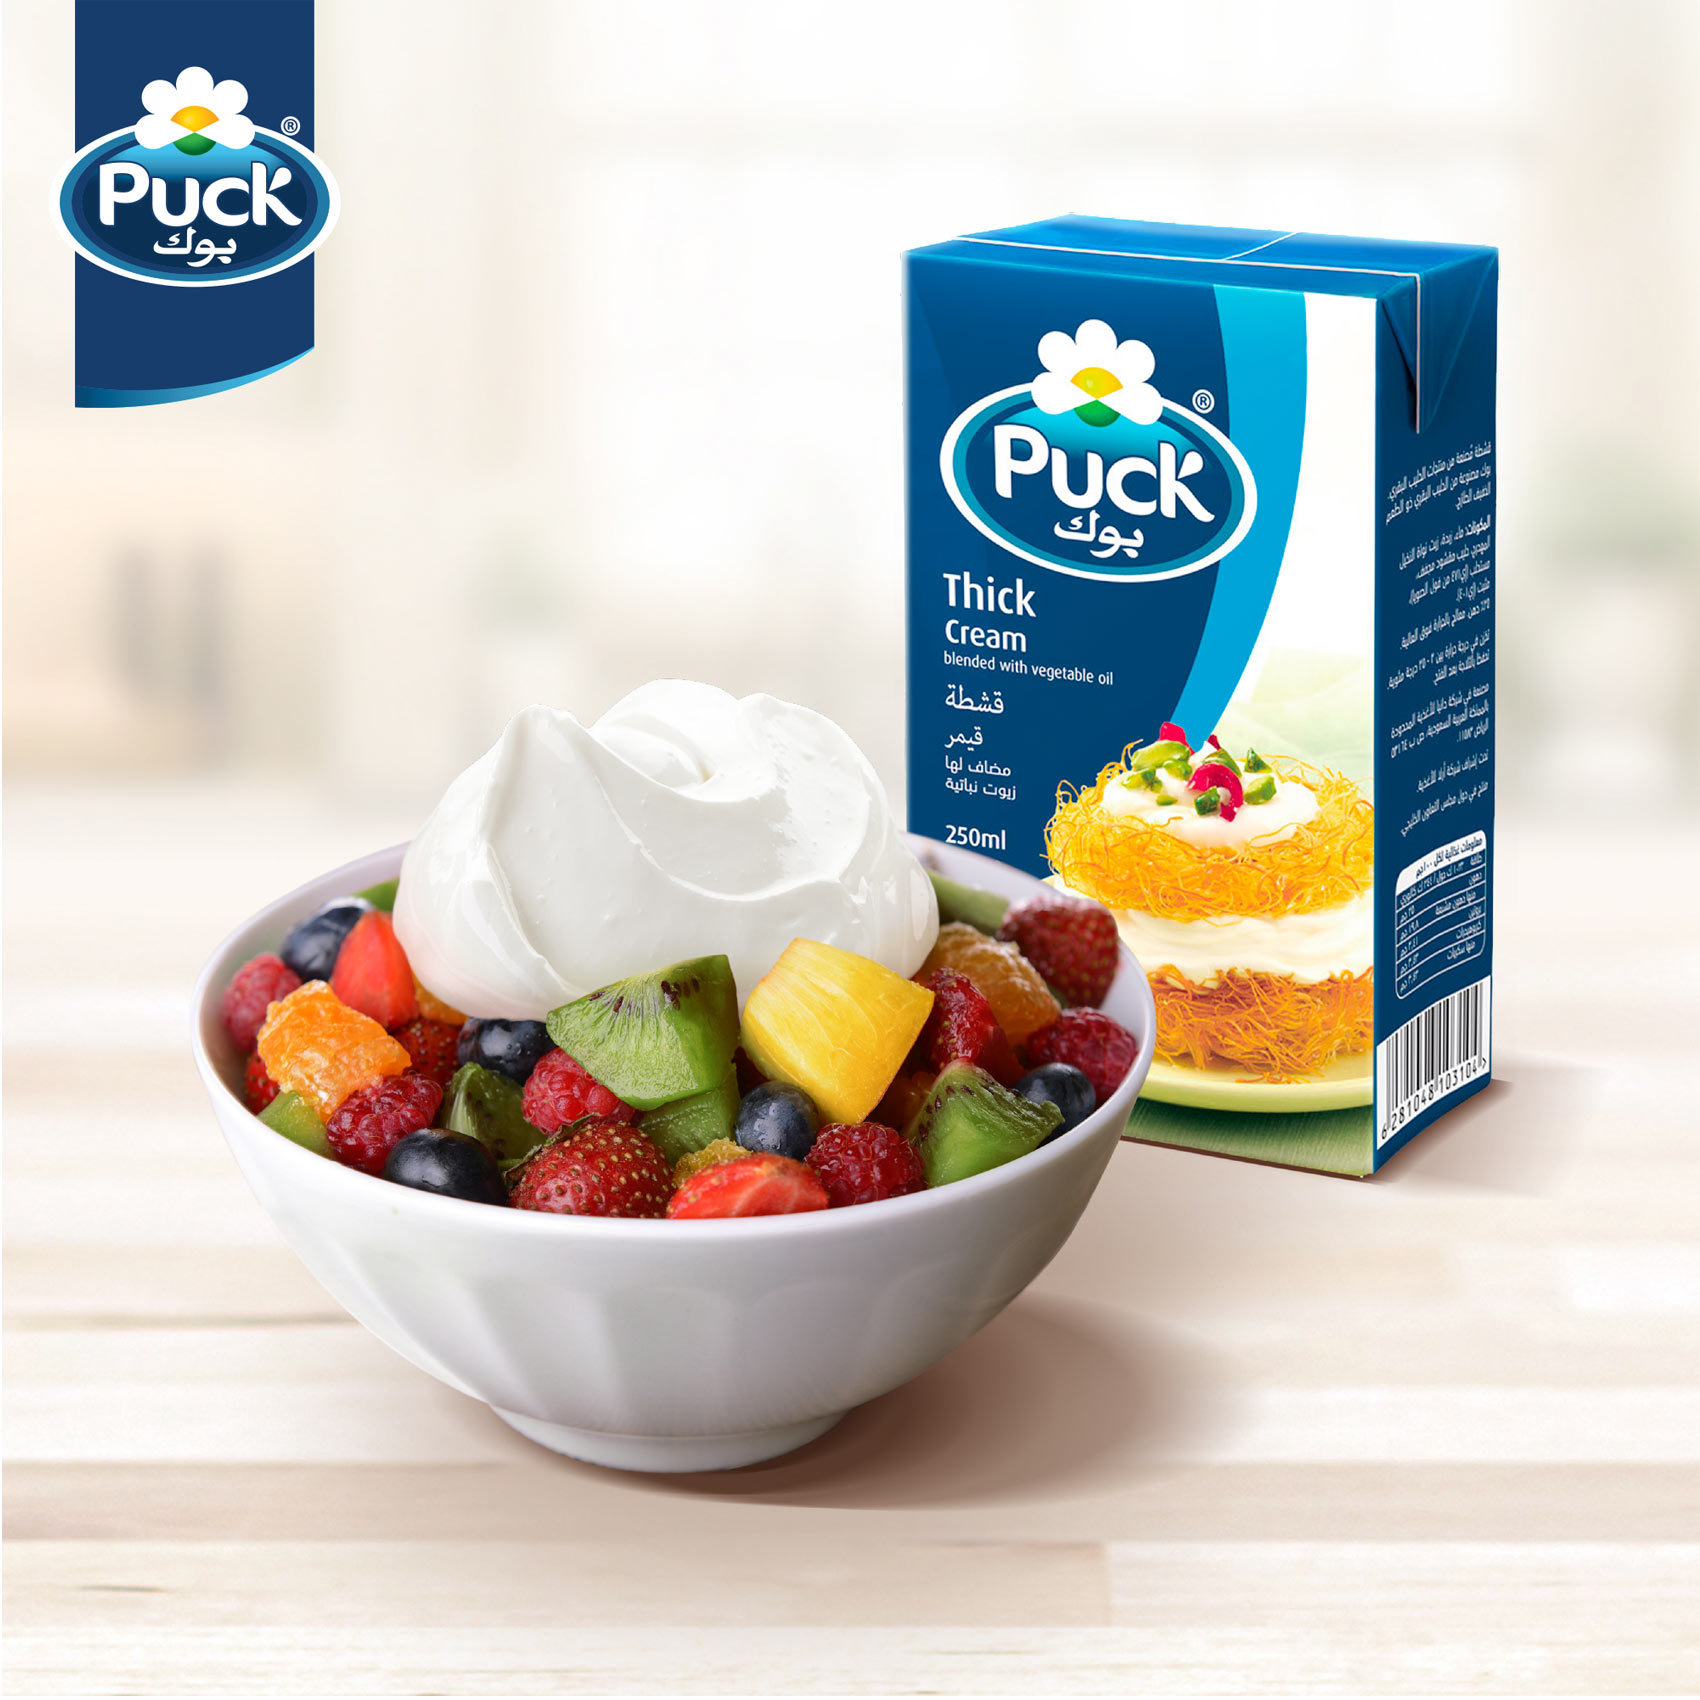 Puck Thick Cream Blended with Vegetable Oil 250ml x3